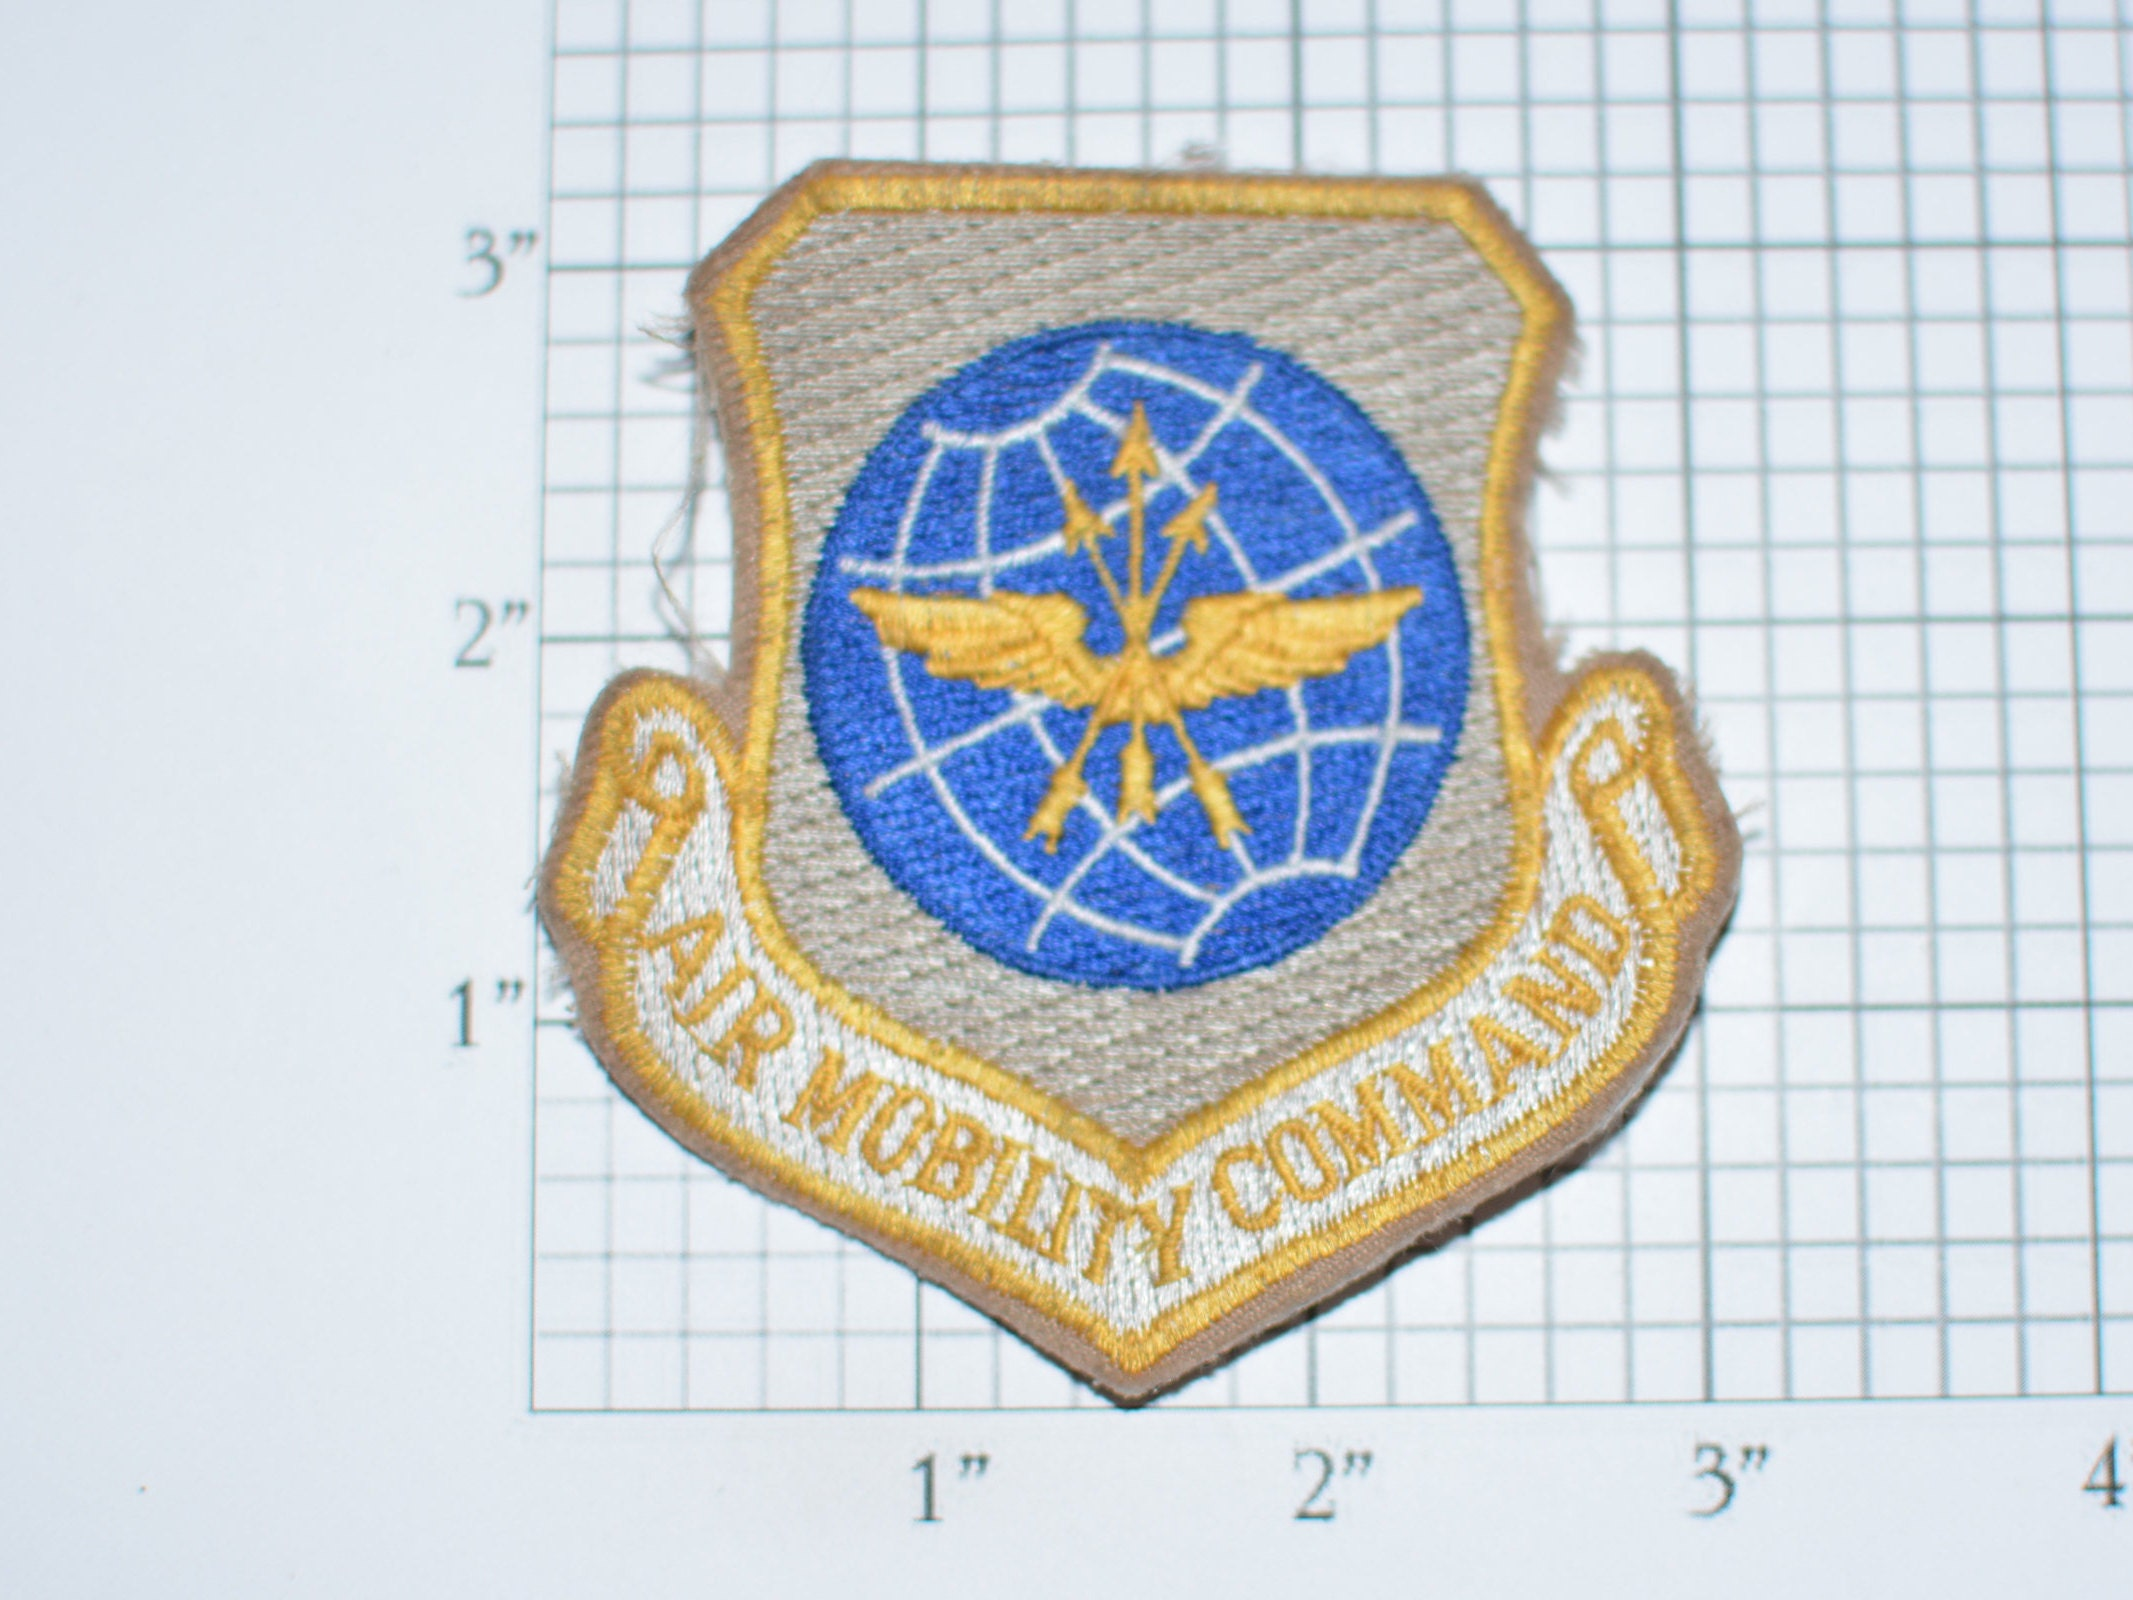 USAF Air Mobility Command Sew On Vintage Embroidered Clothing Patch Military Militaria Gift Collectible Force Scott AFB Illinois E33g